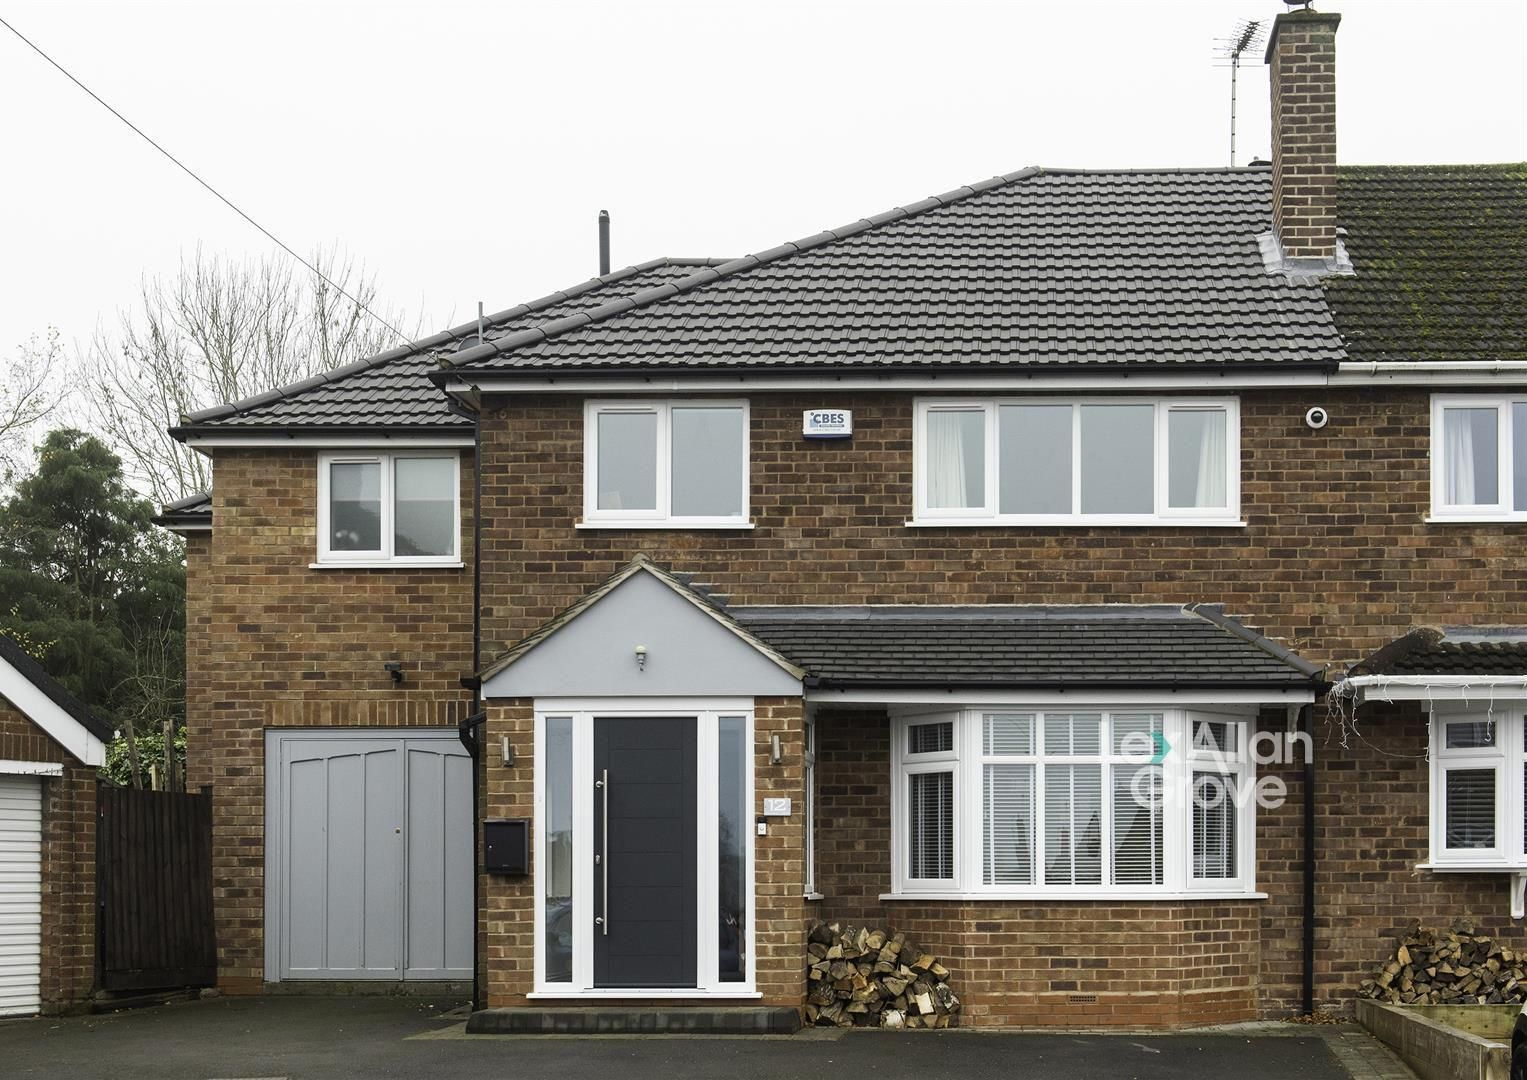 4 bed semi-detached for sale - Property Image 1